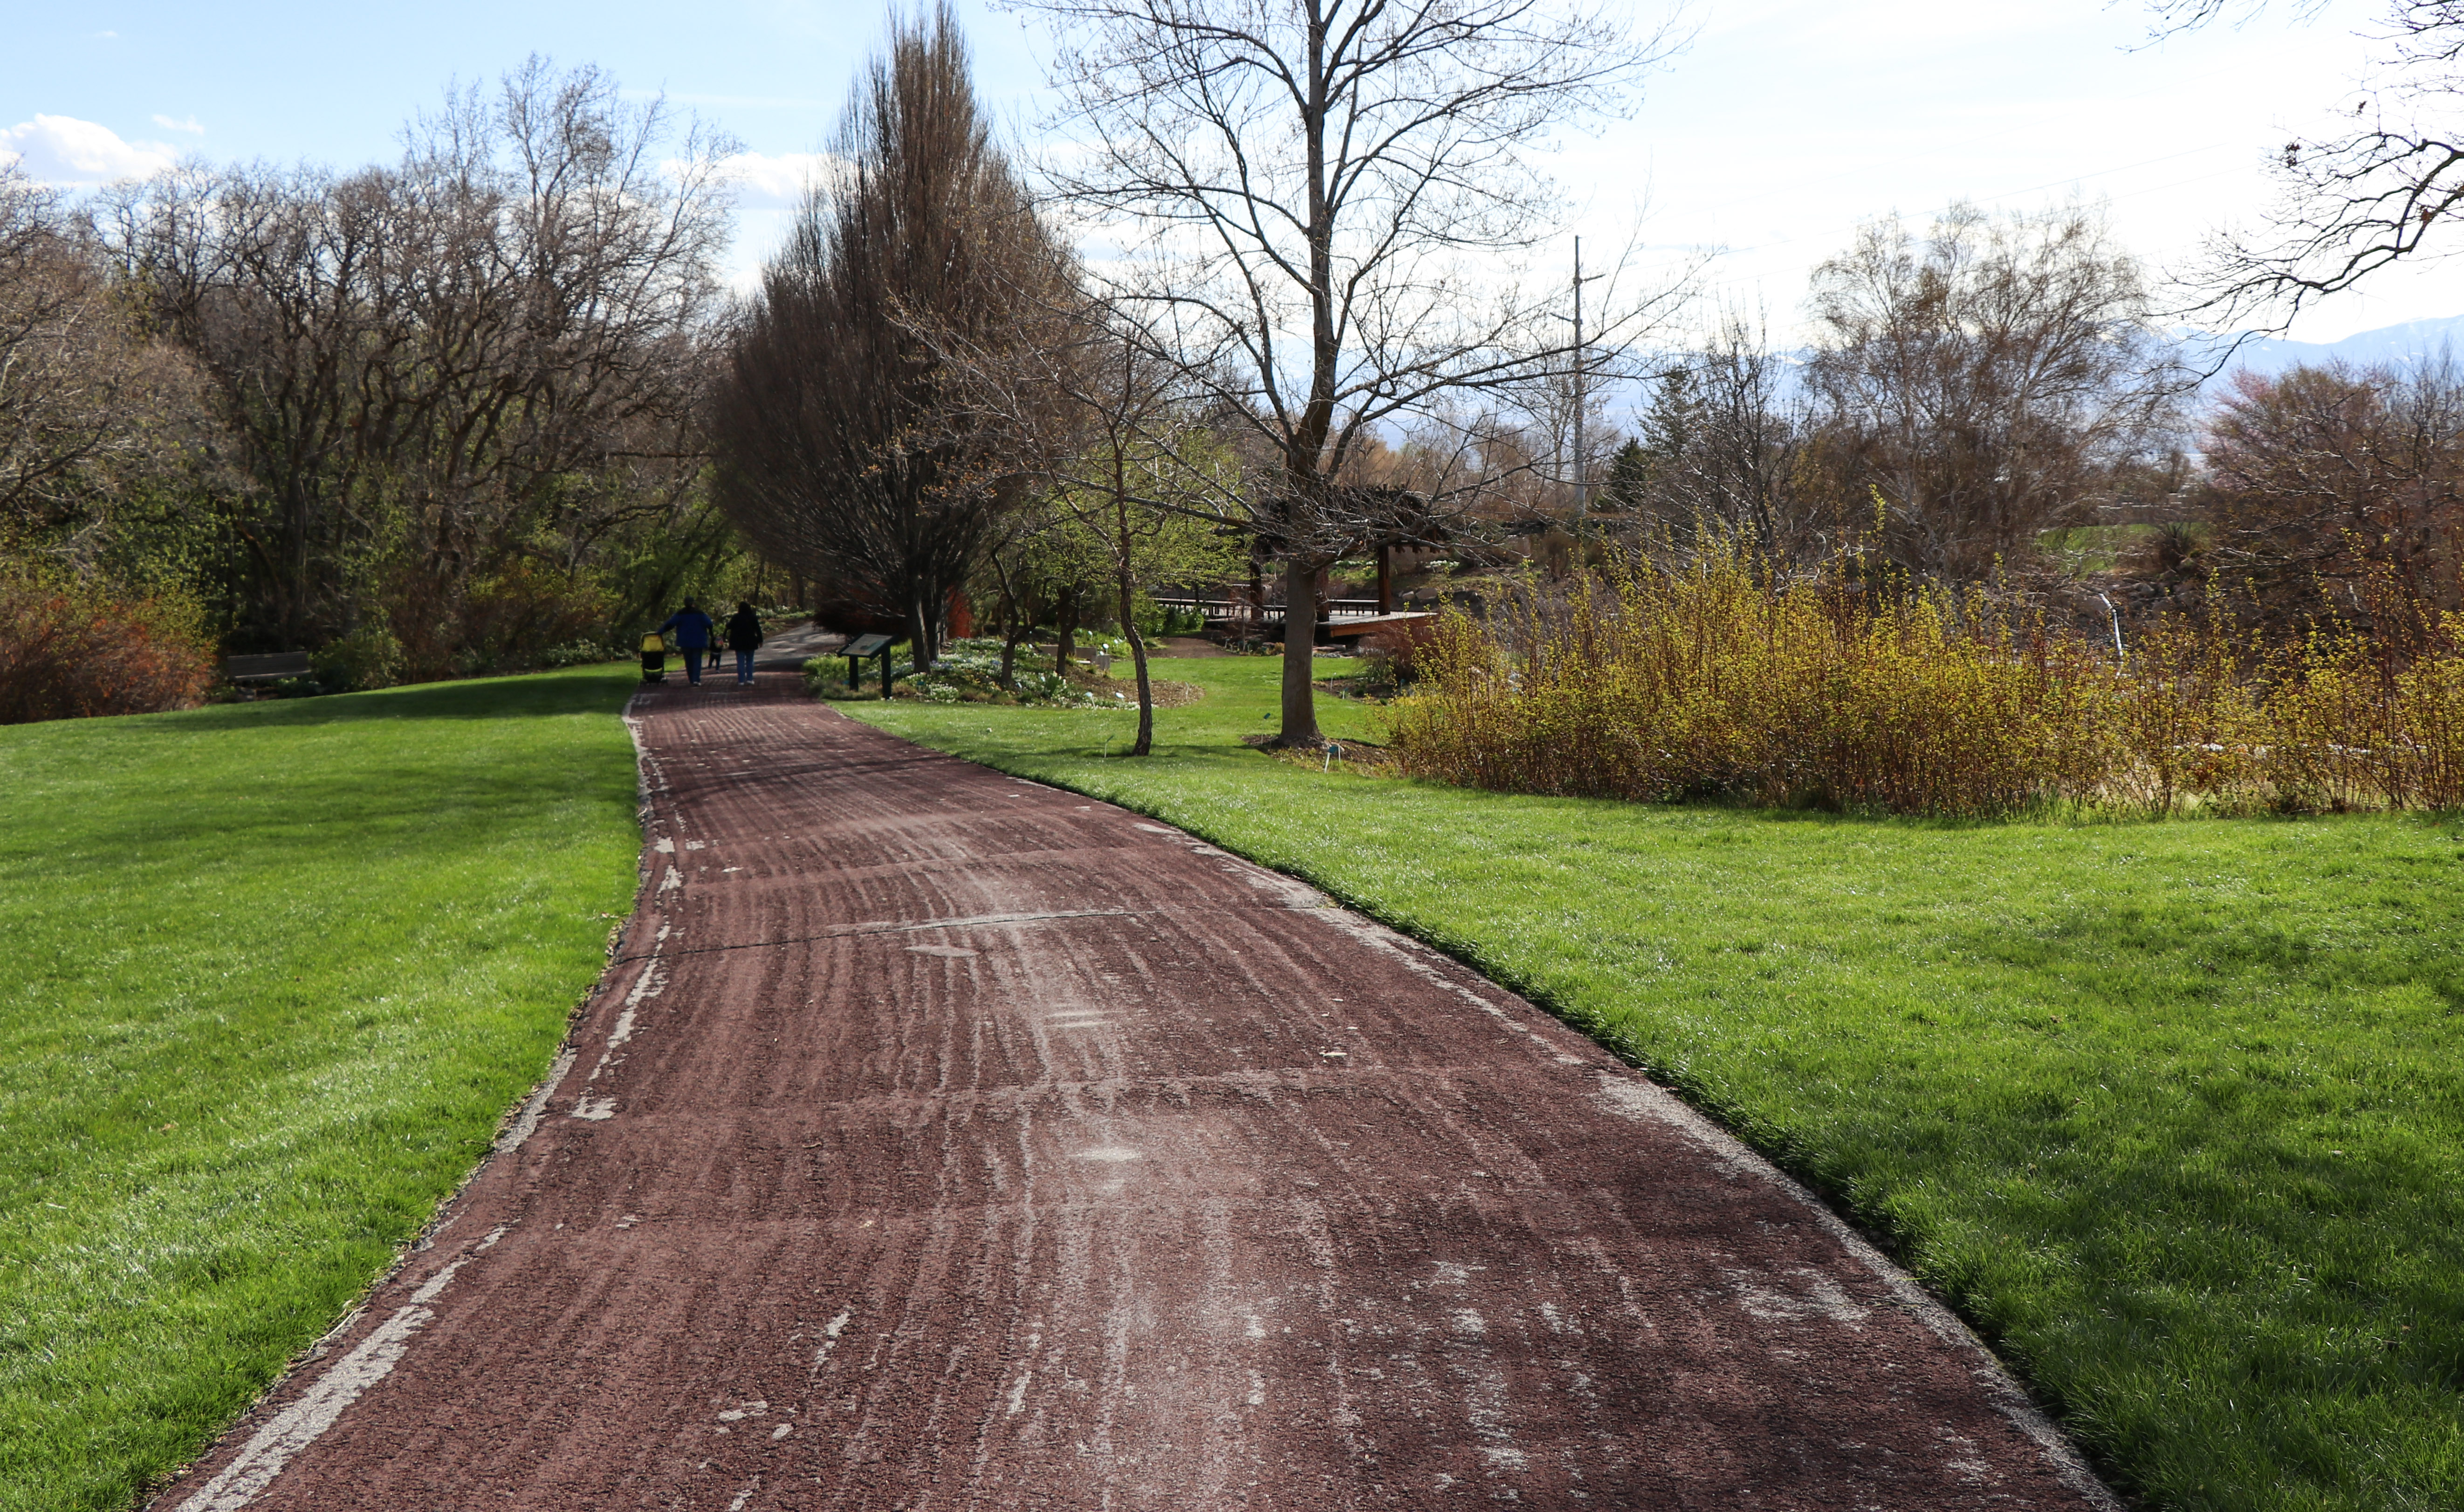 An early spring visit to Red Butte Garden produced the most gorgeous views.